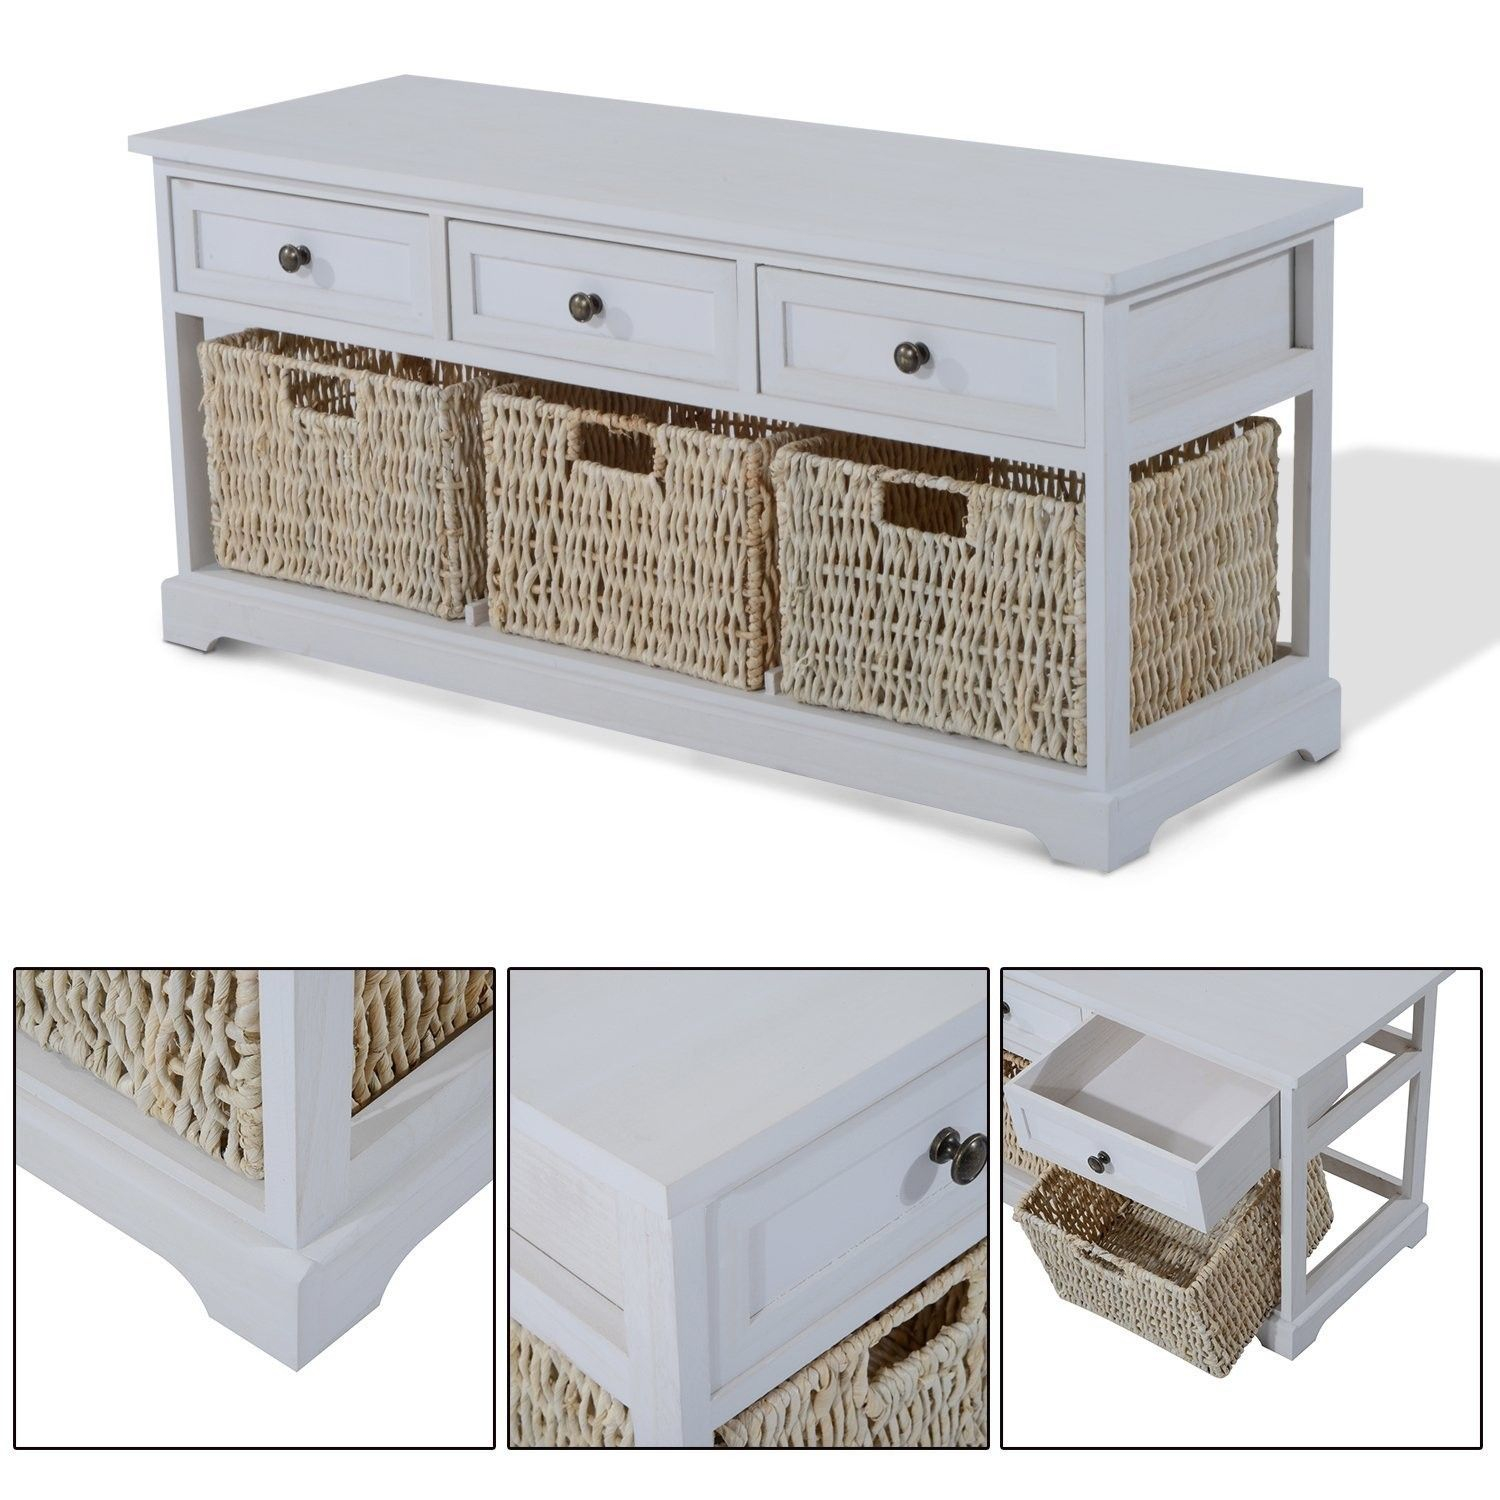 Wooden Coffee Table With Seagrass Wicker Storage Baskets regarding size 1500 X 1500